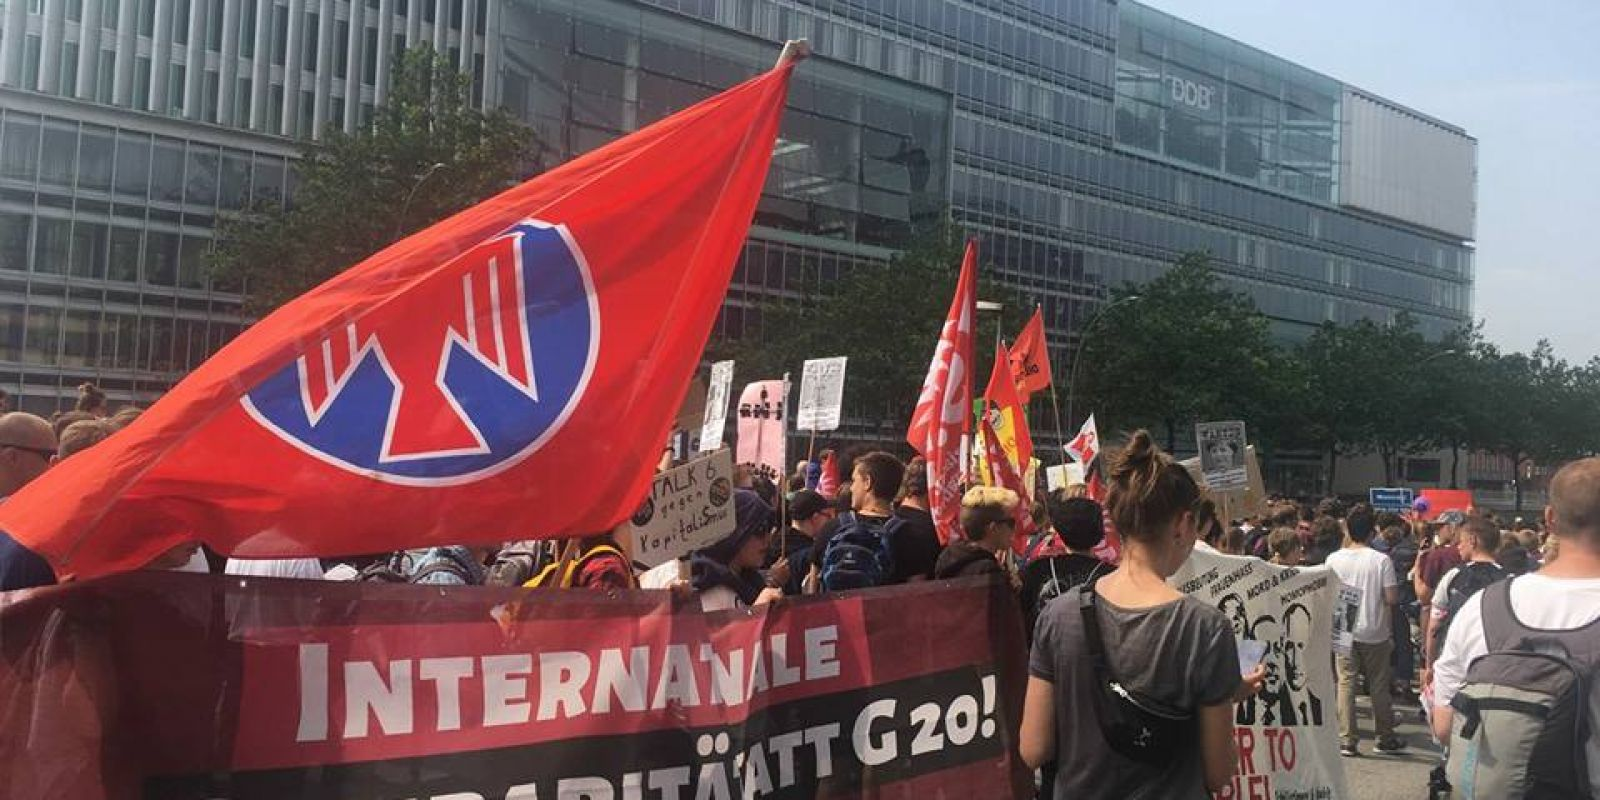 Internationale Solidarität statt G20